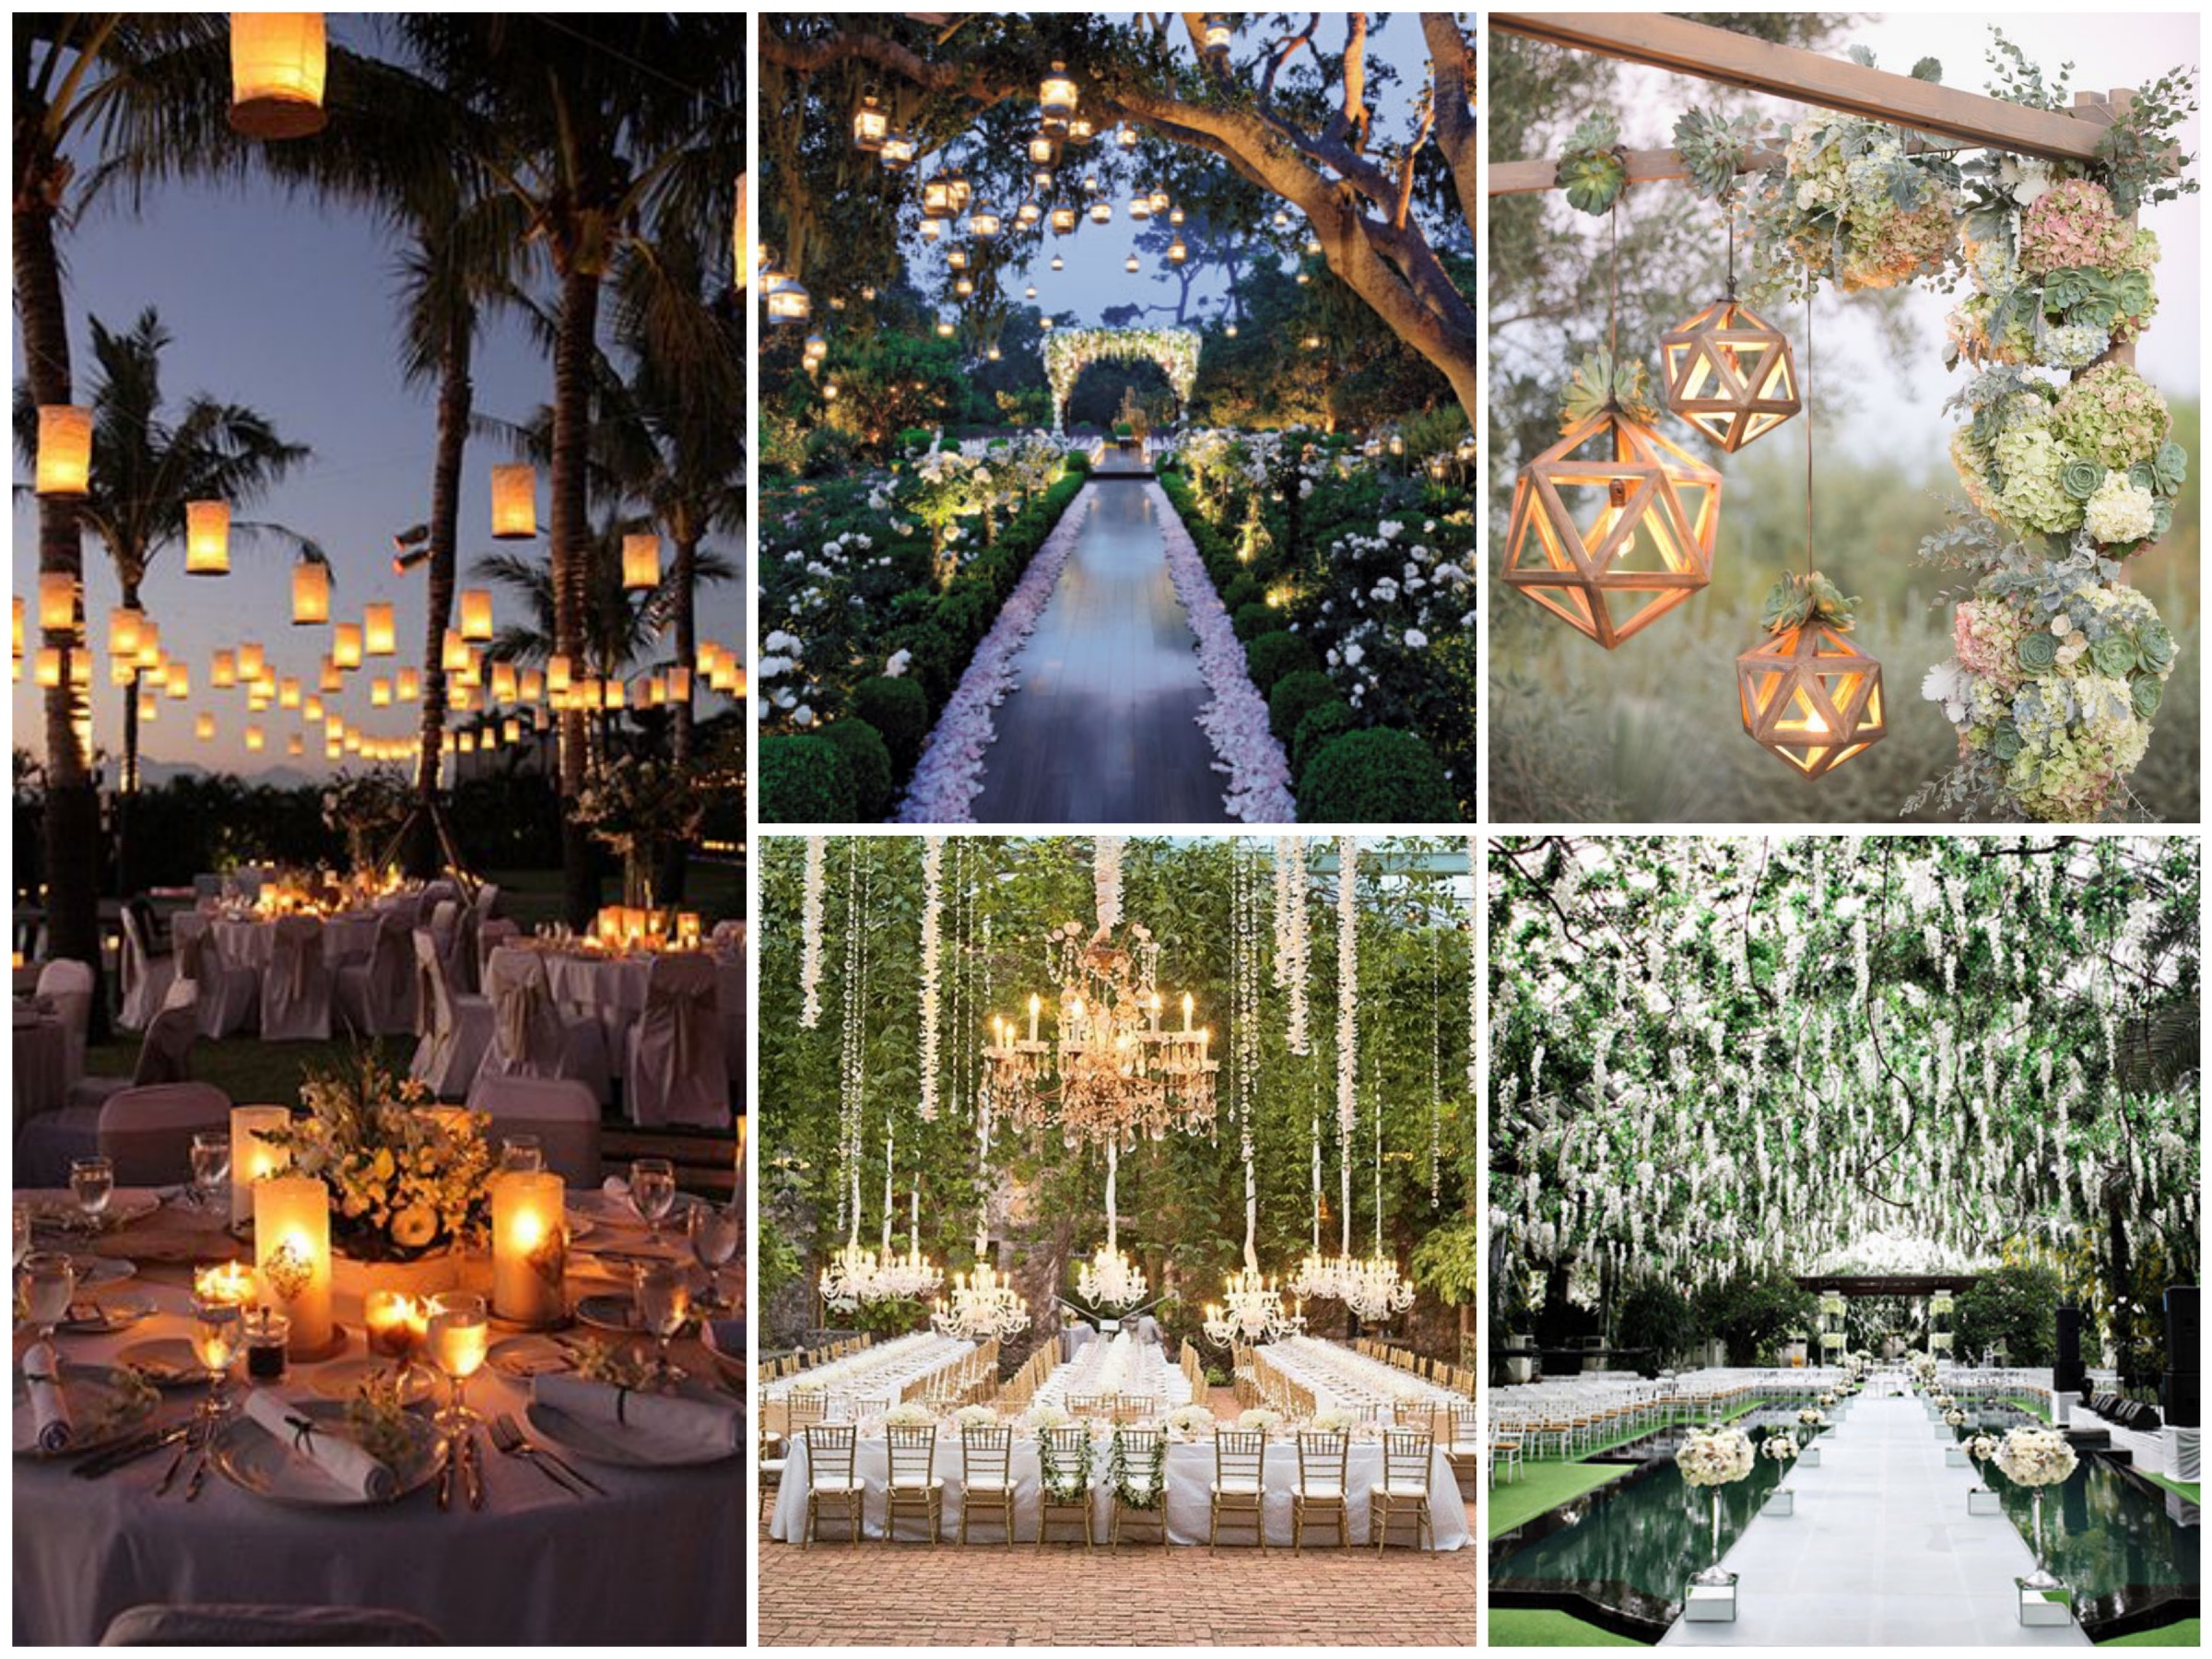 Lights for a romantic wedding